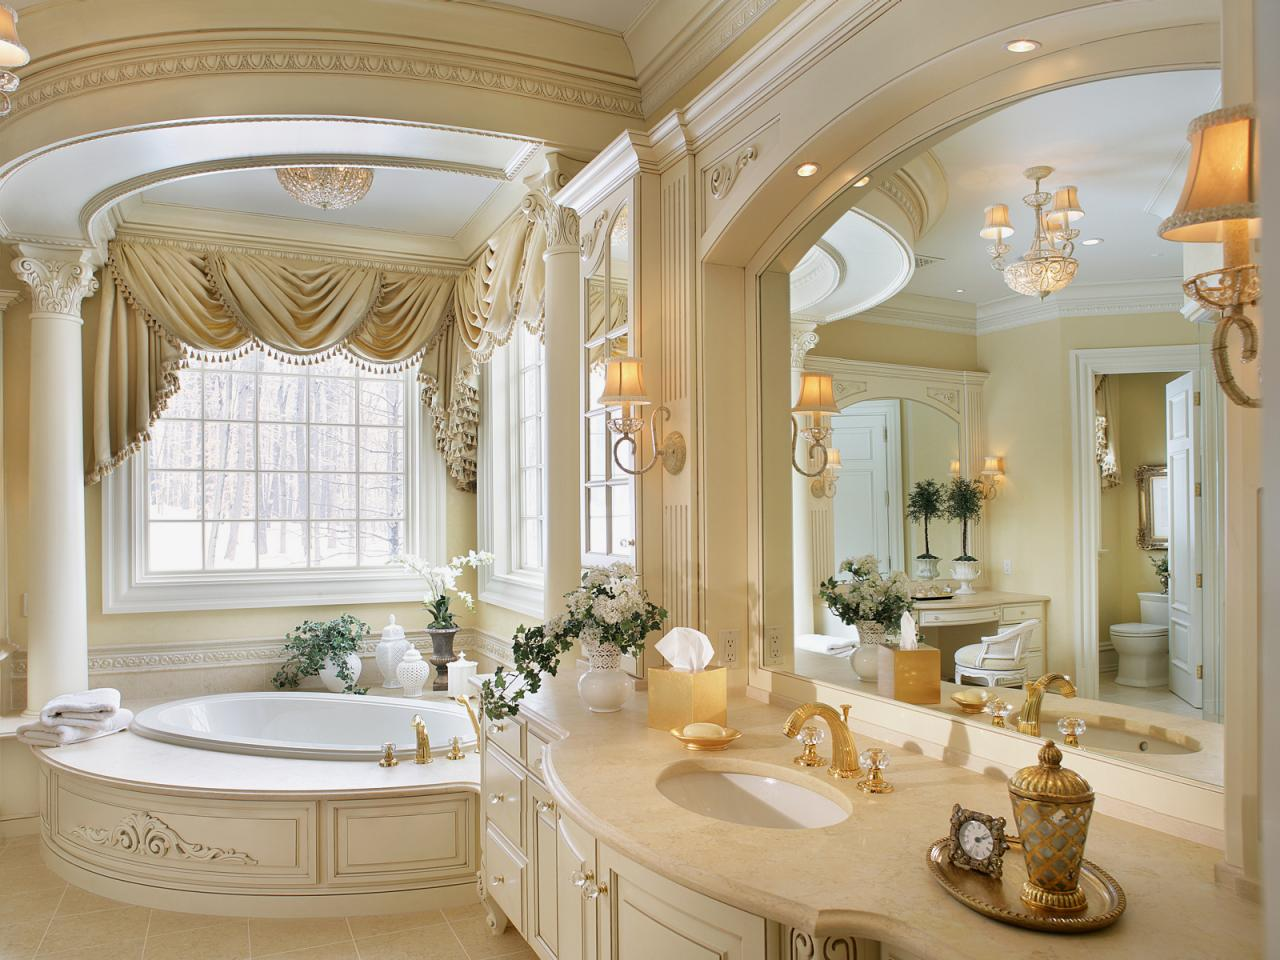 Traditional Elegant Master Bathroom Peter Salerno HGTV - Gold bathroom light fixtures for bathroom decor ideas